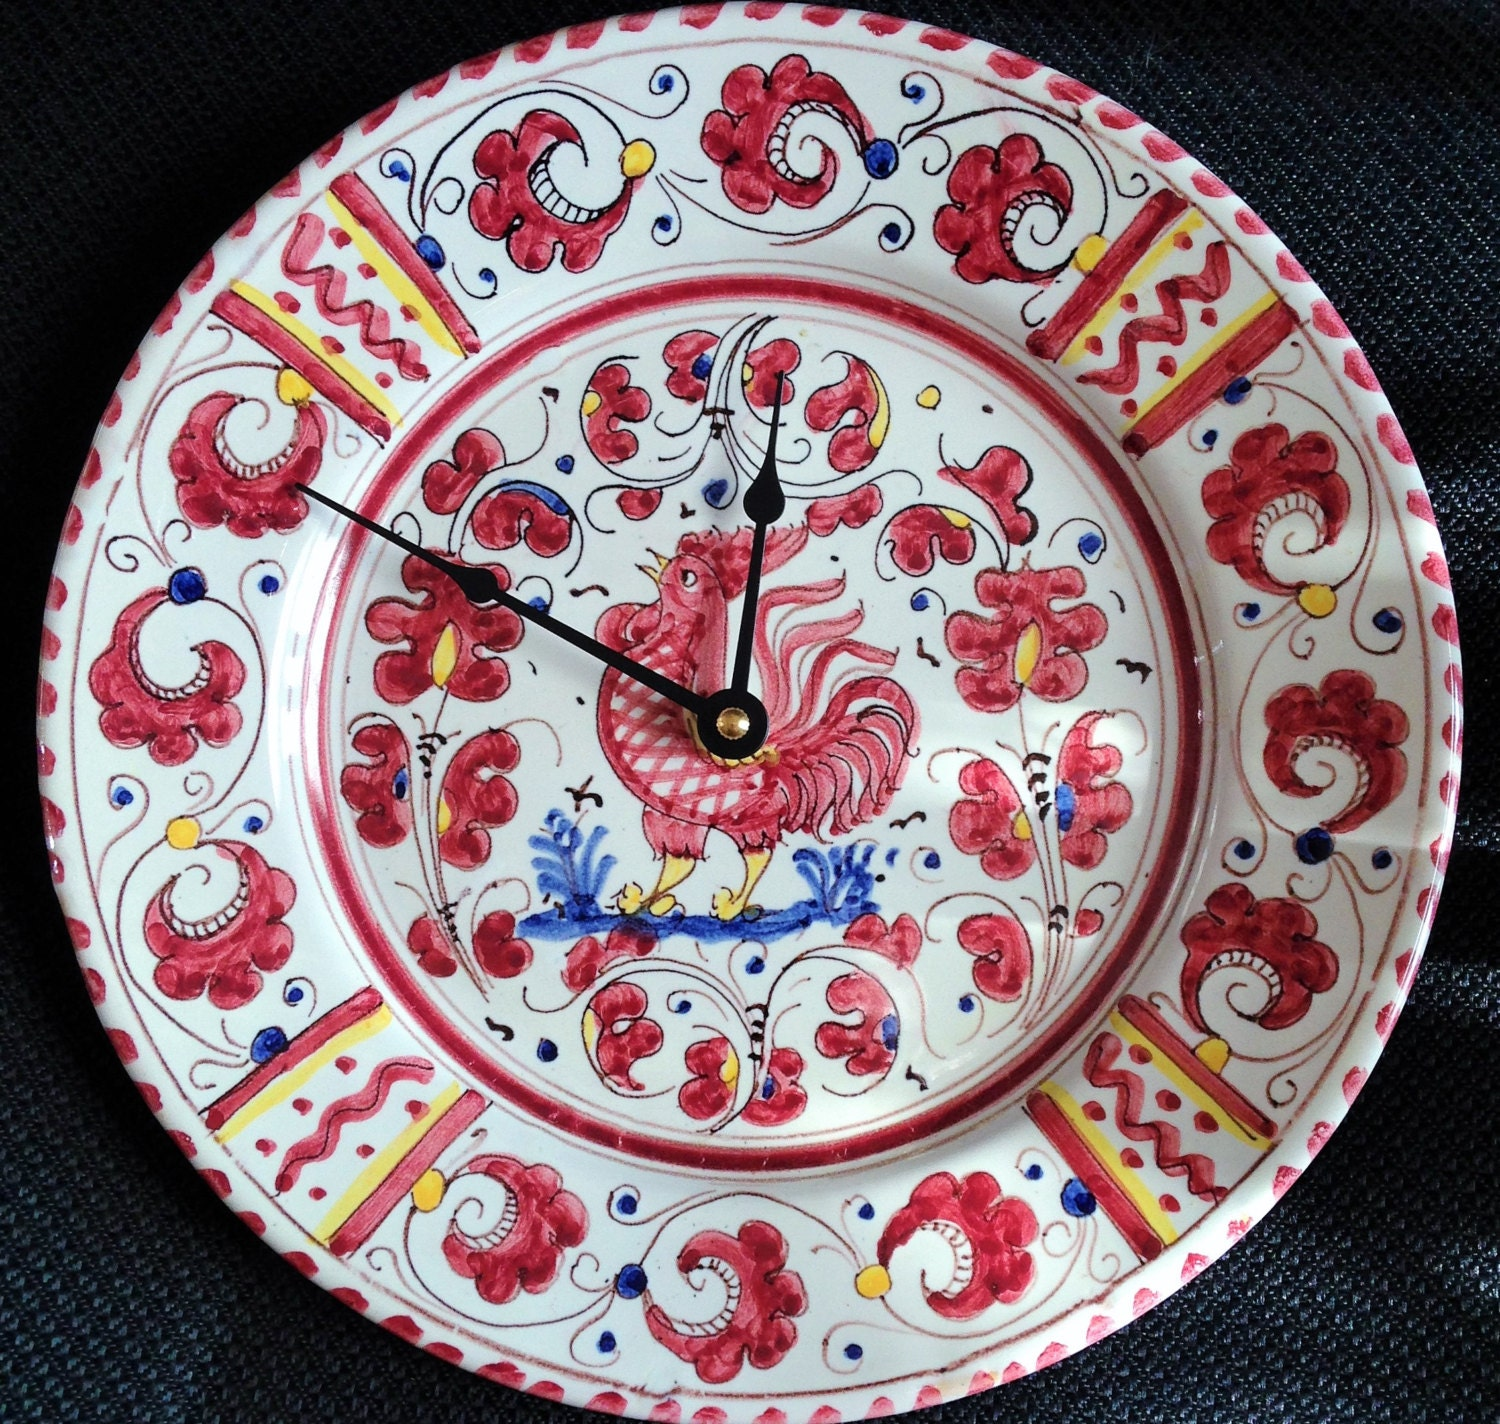 Pv Italy Deruta Ceramic Singing Red Rooster Country Style